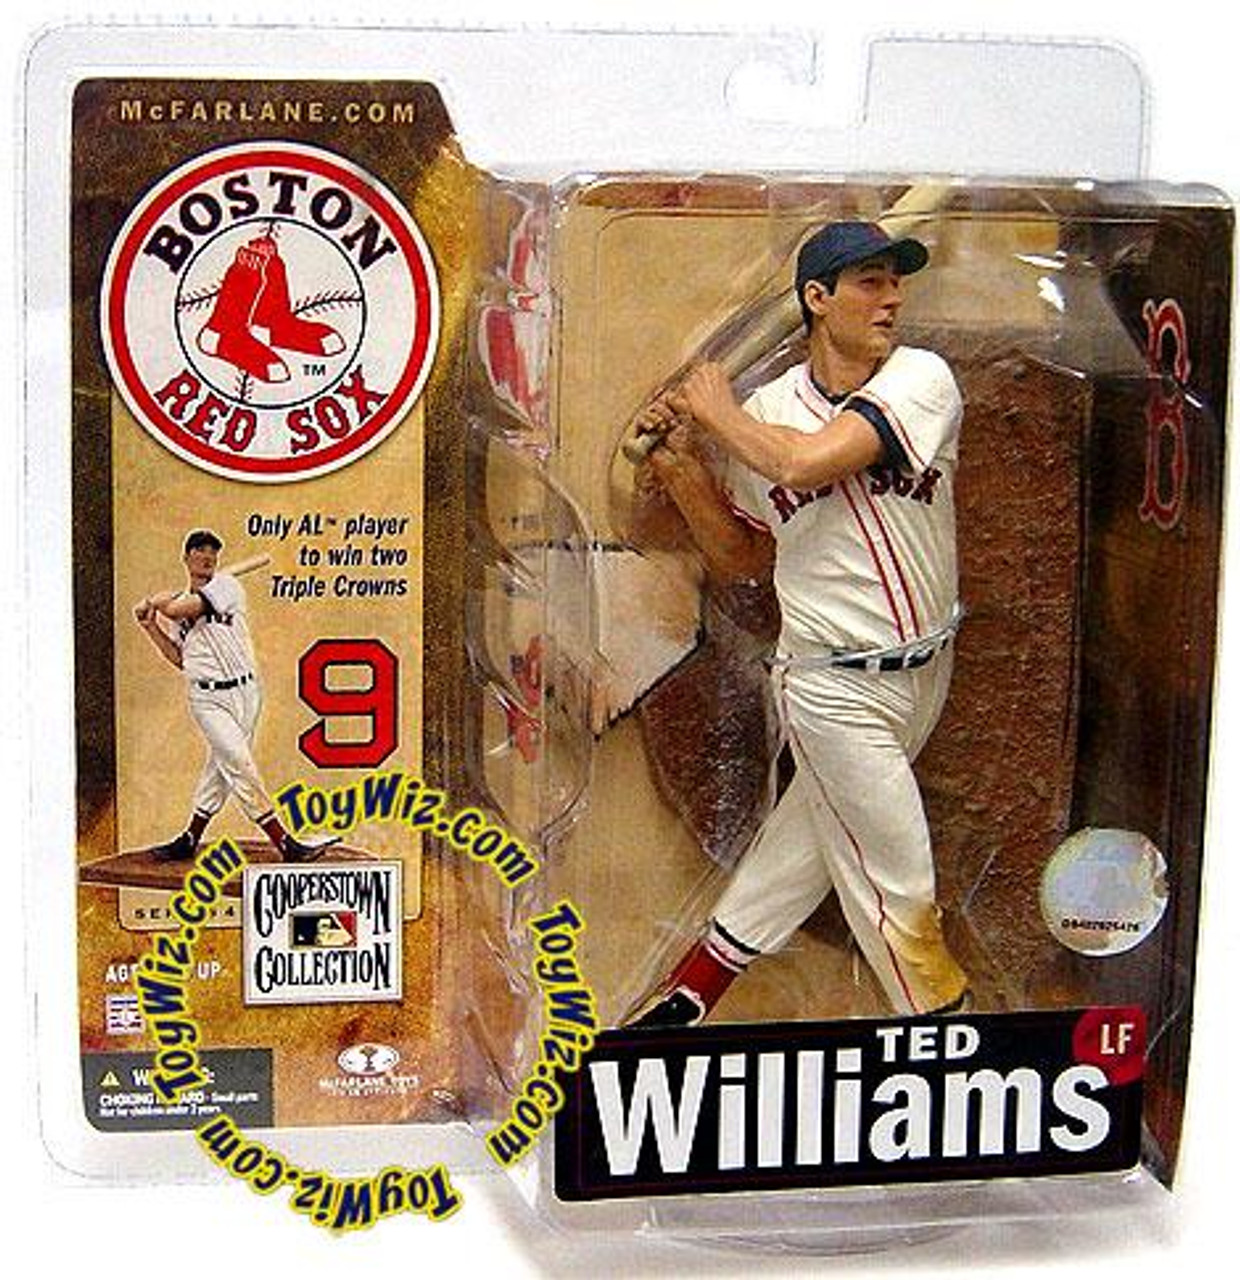 McFarlane Toys MLB Boston Red Sox Cooperstown Collection Series 4 Ted Williams Action Figure [White Uniform]